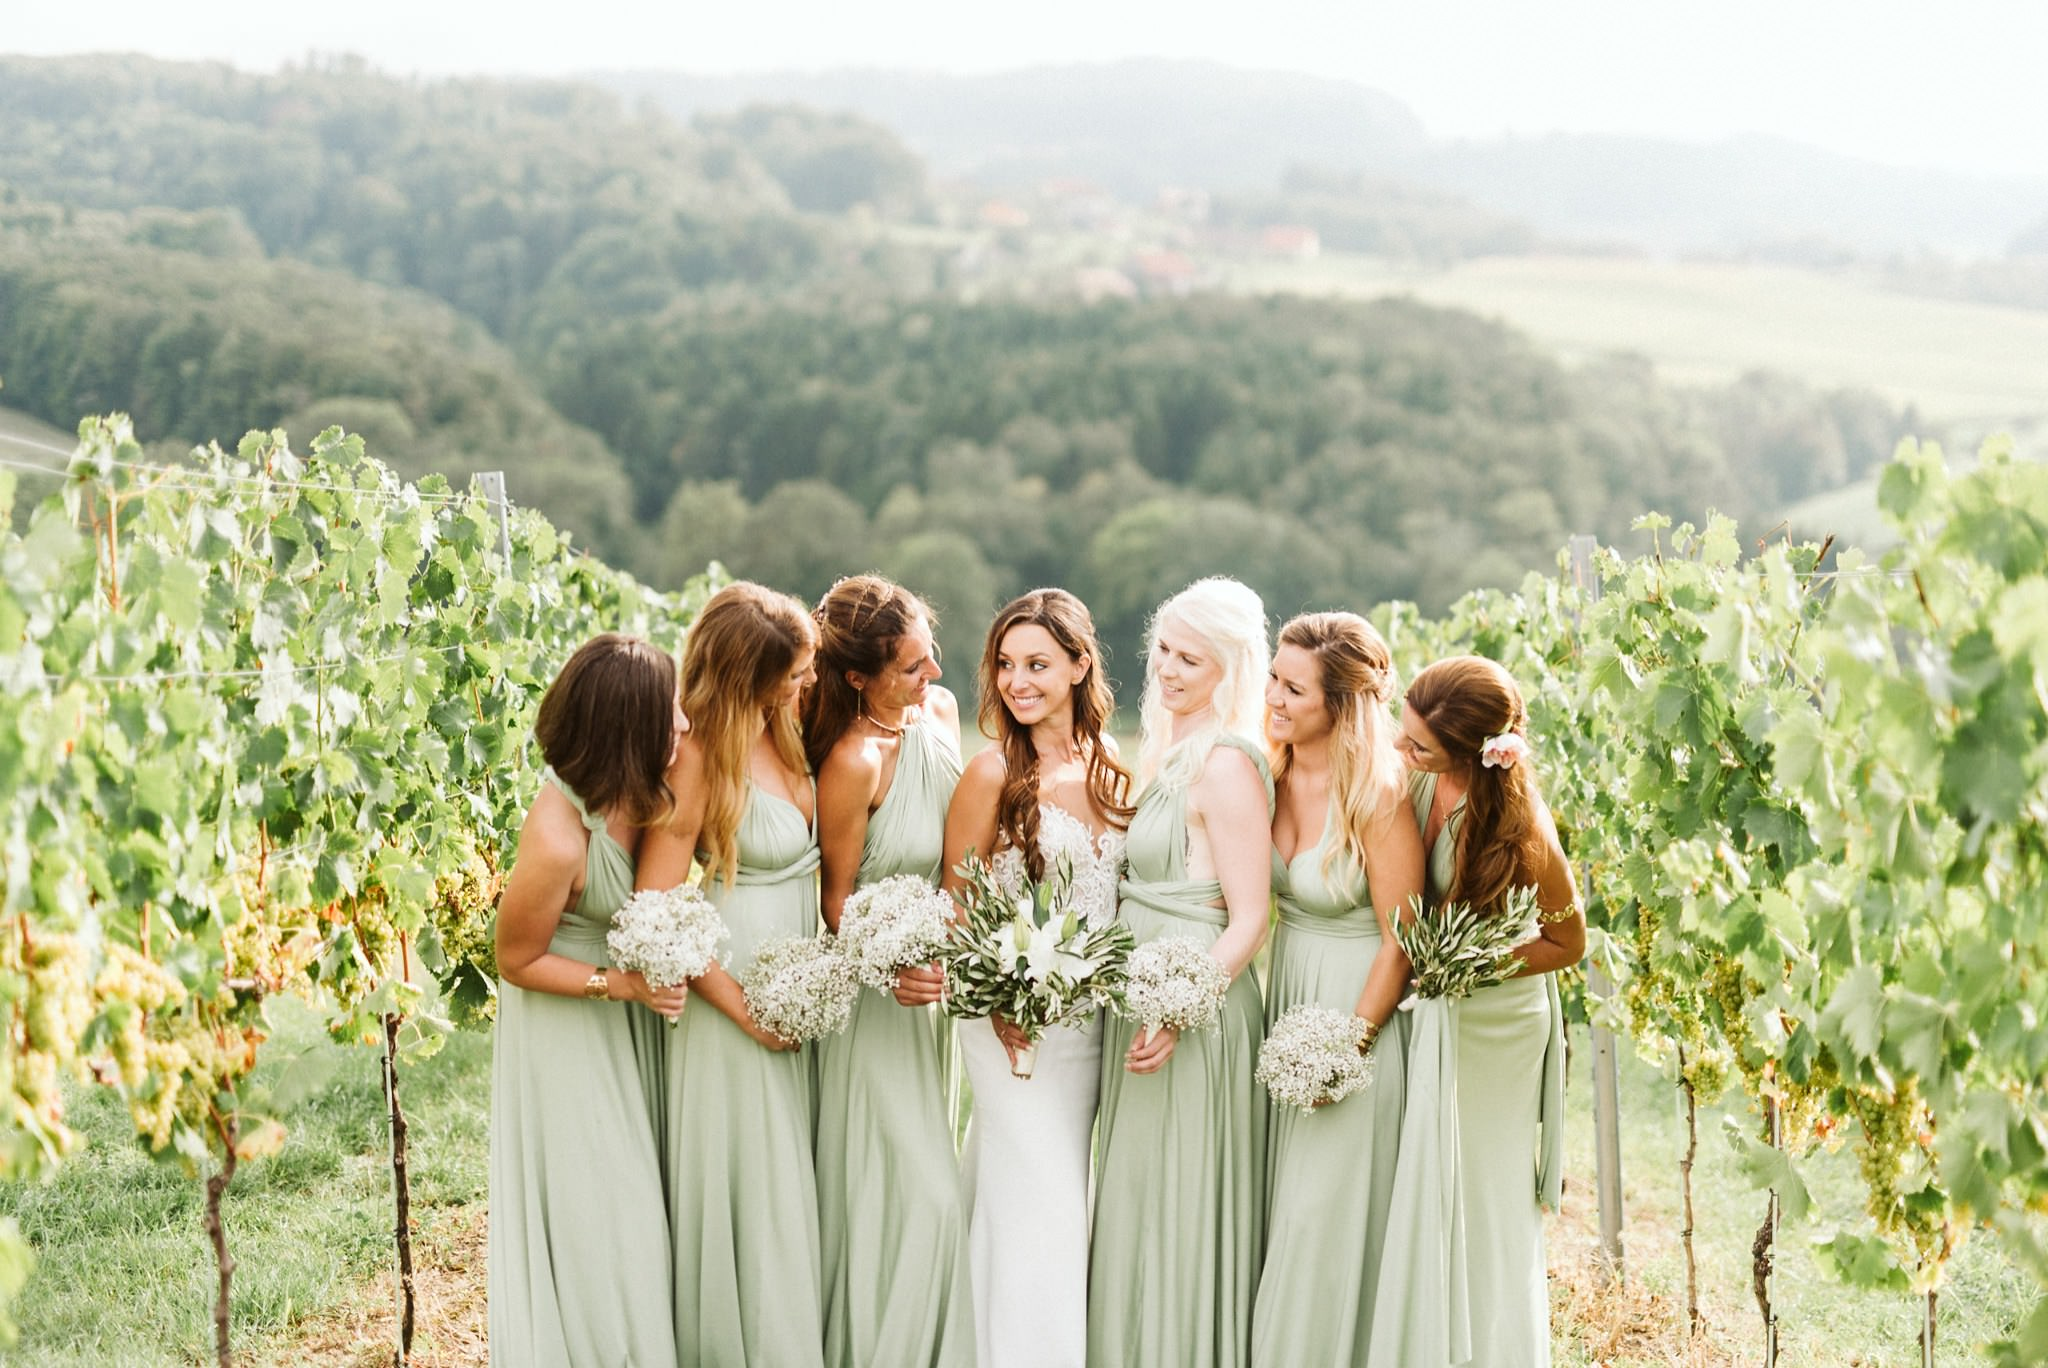 Brides Best Friends